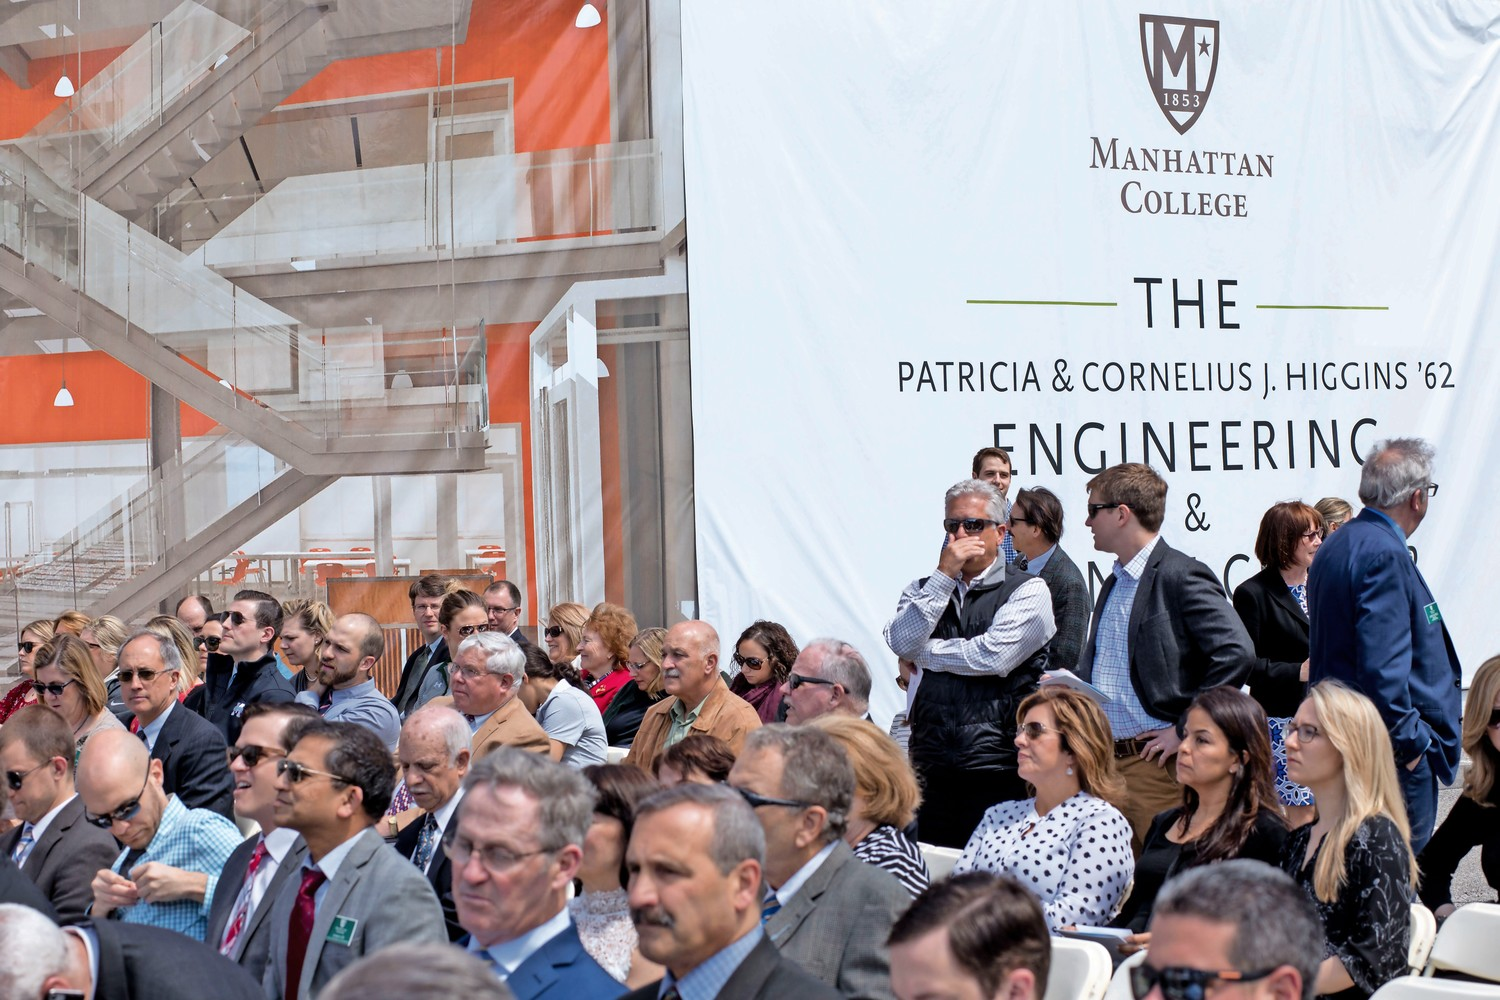 People take their seats at a groundbreaking ceremony for Manhattan College's Patricia & Cornelius J. Higgins '62 Engineering and Science Center. The new center is expected to be completed in 2020.